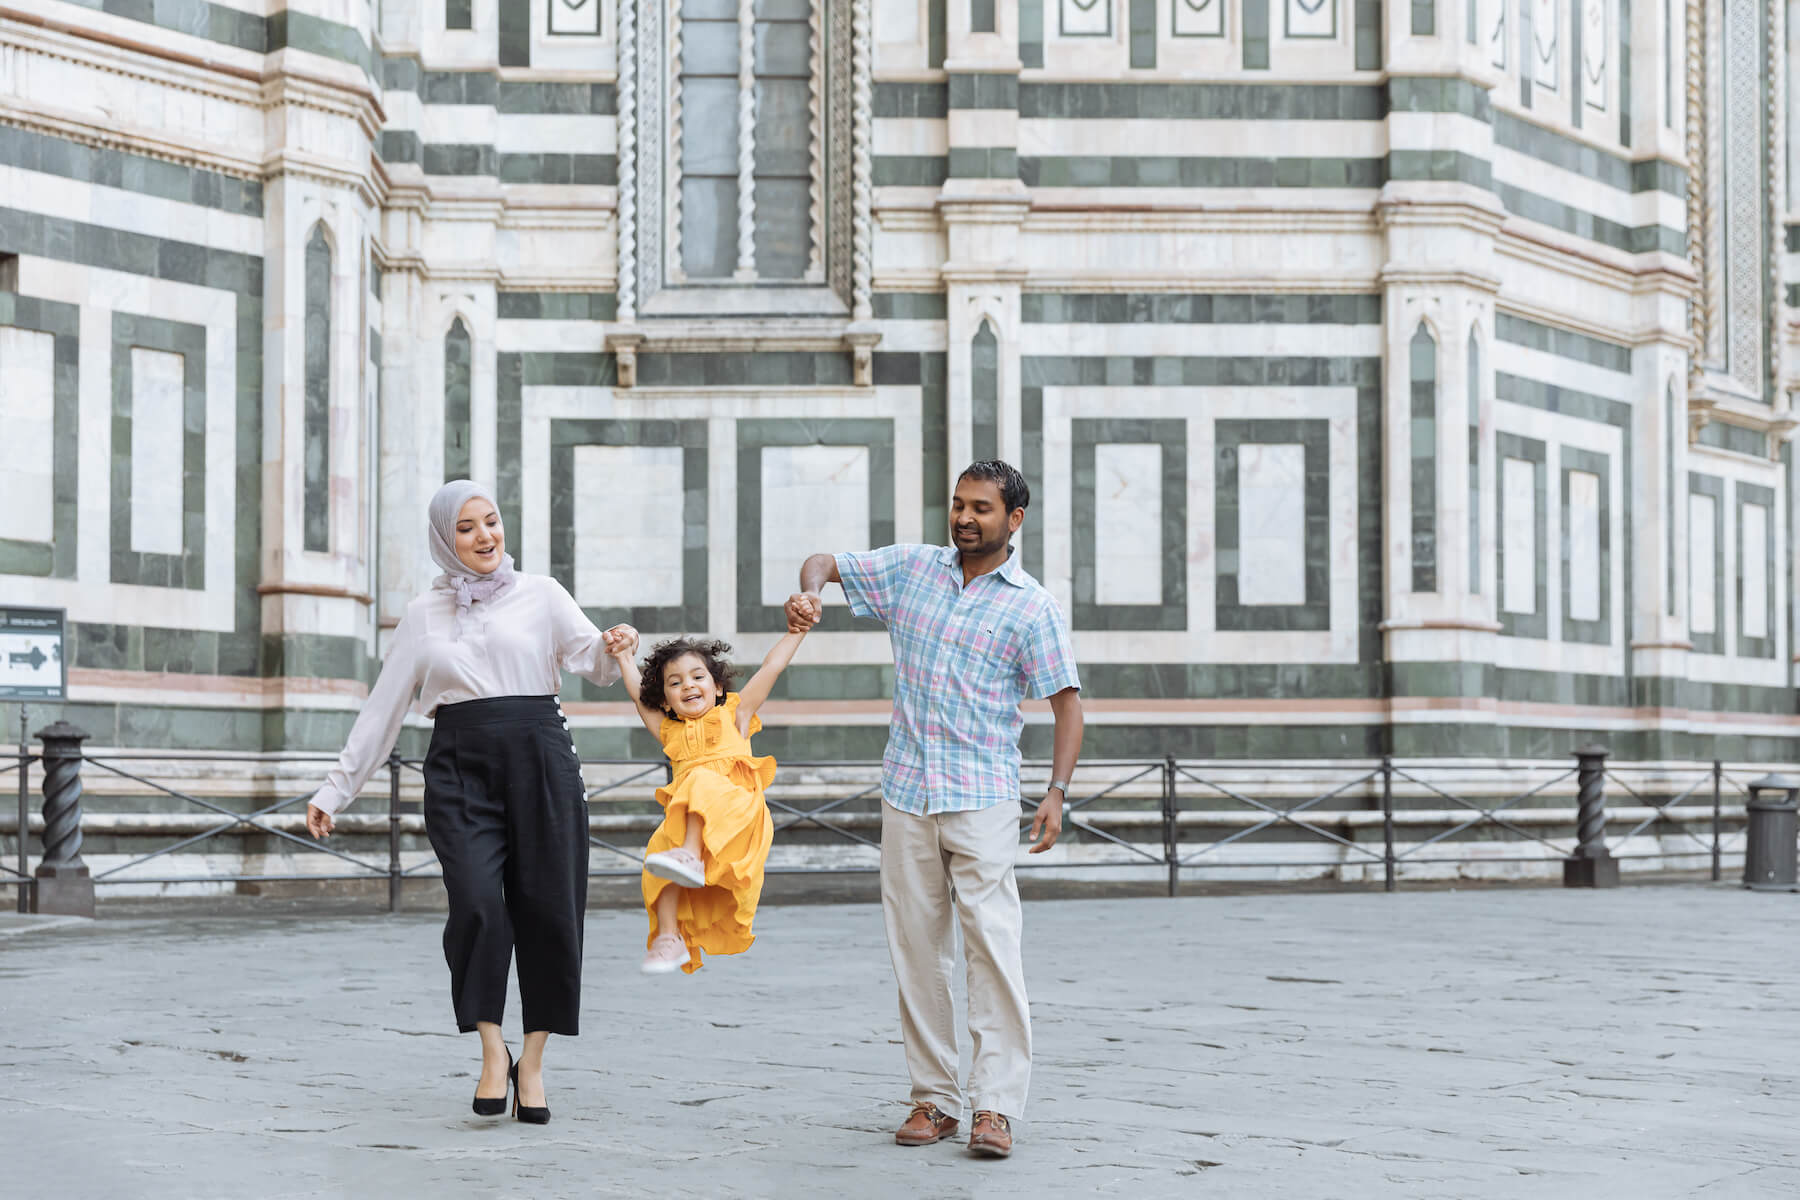 family of three, the girl is being swung in front of the Duomo in Florence, Italy